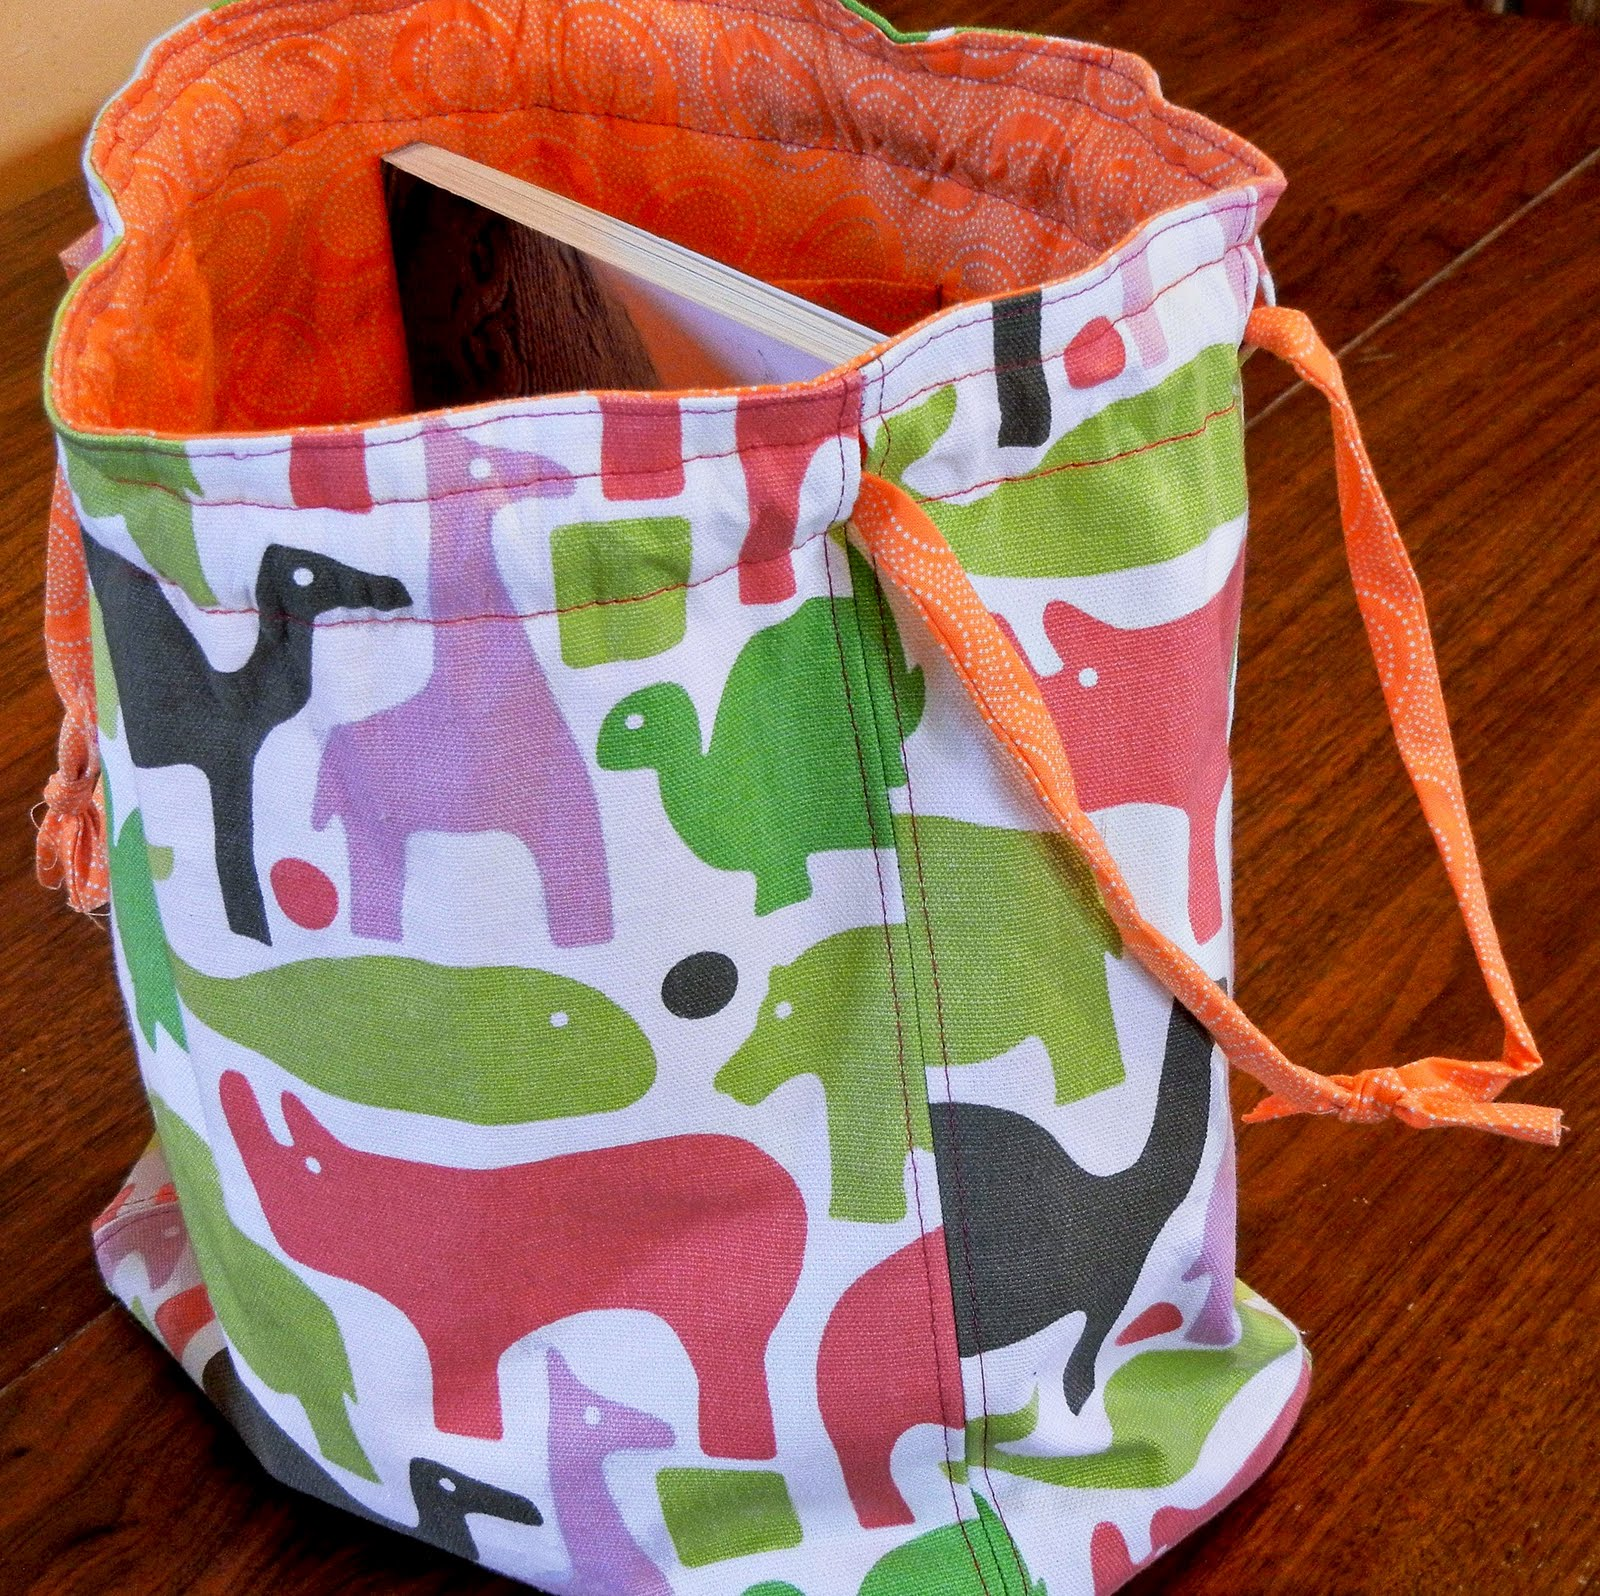 versus: Knitting Bag Tutorial with Guest Buffy of Passionate Design